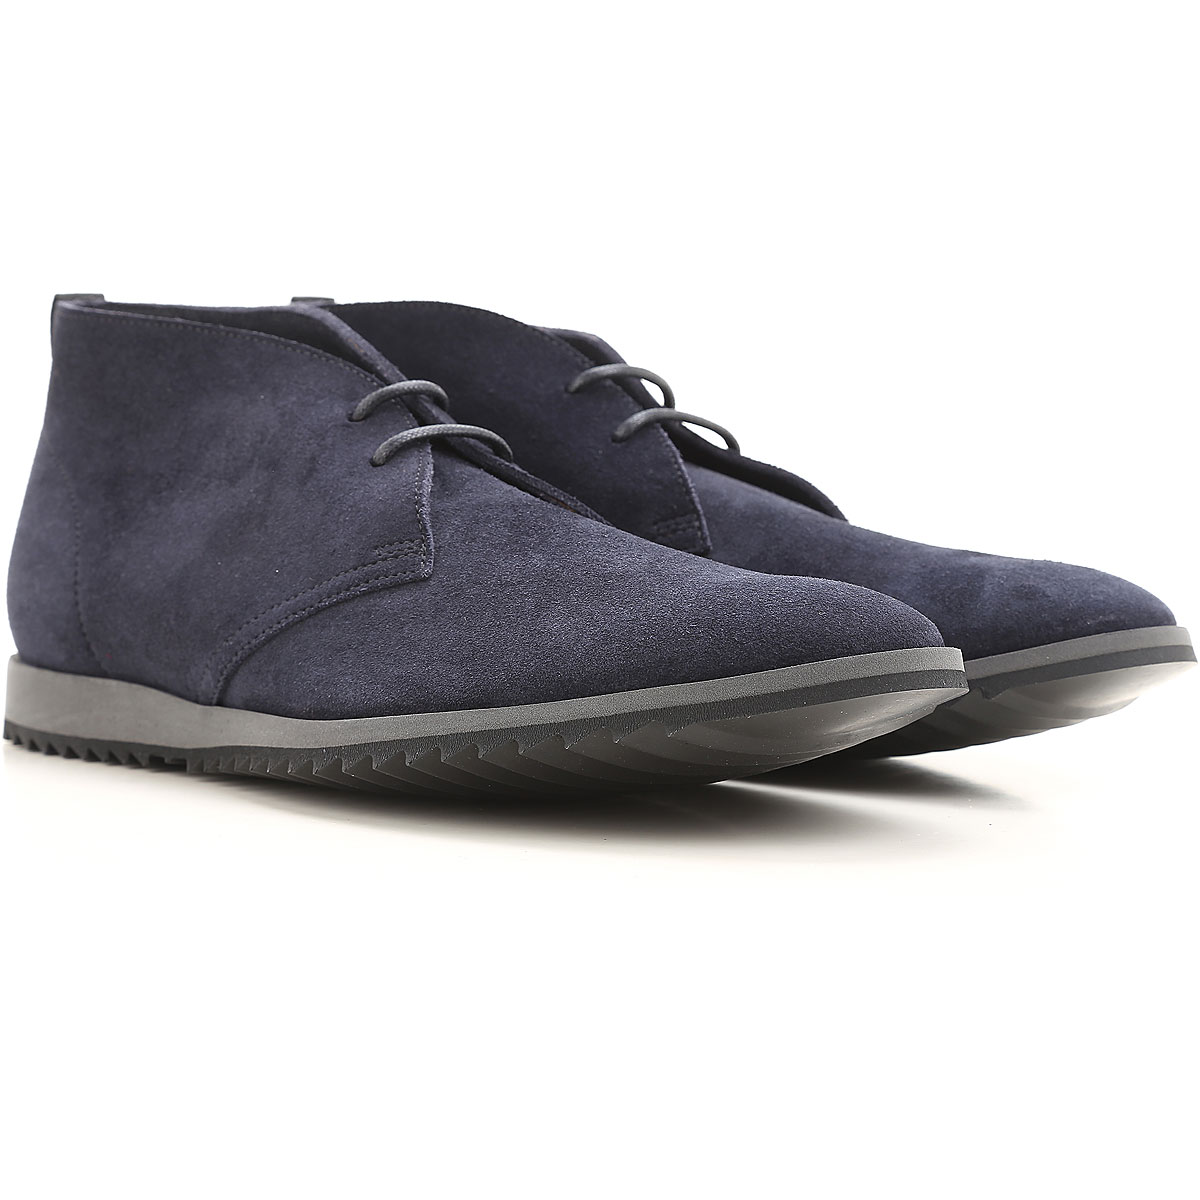 Image of Car Shoe Desert Boots Chukka for Men, Dark Blue, suede, 2017, 9 9.5